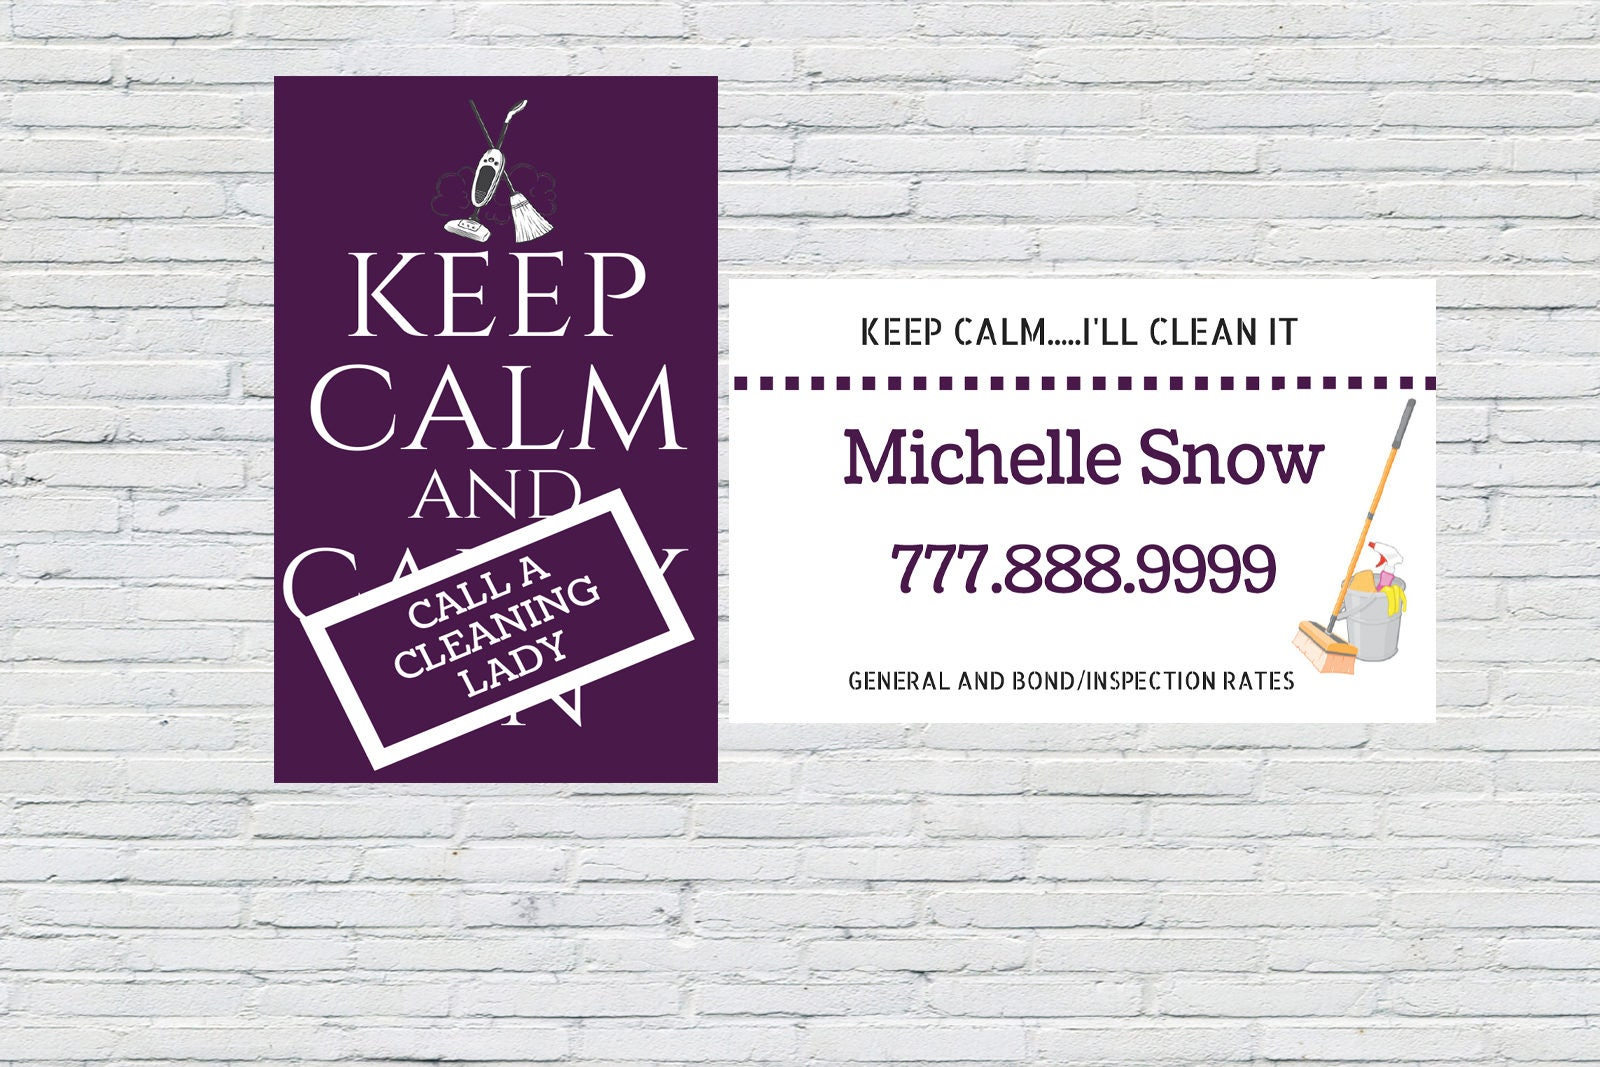 Housekeeping Business Card Cleaning Business Card Maid